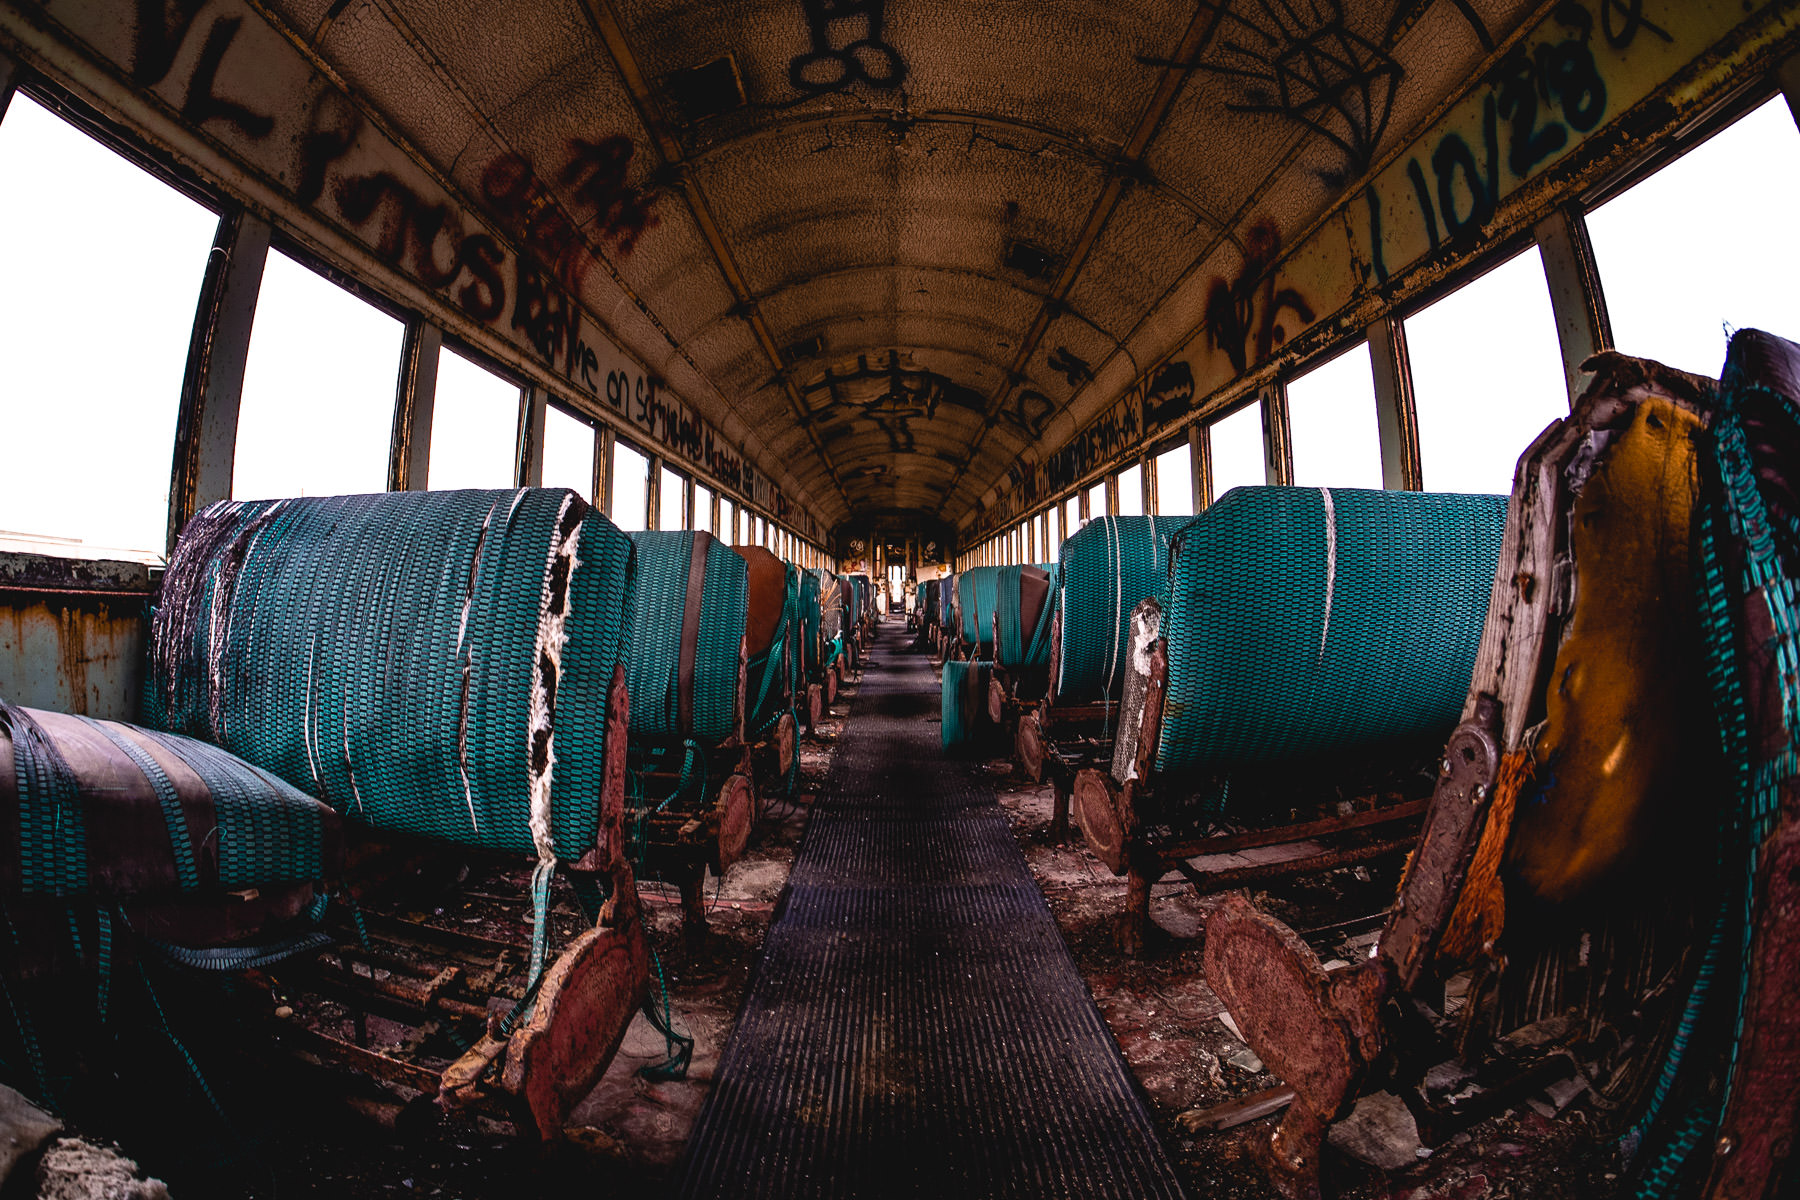 The interior of an abandoned railcar rotting in the Union Pacific rail yard at Galveston, Texas.